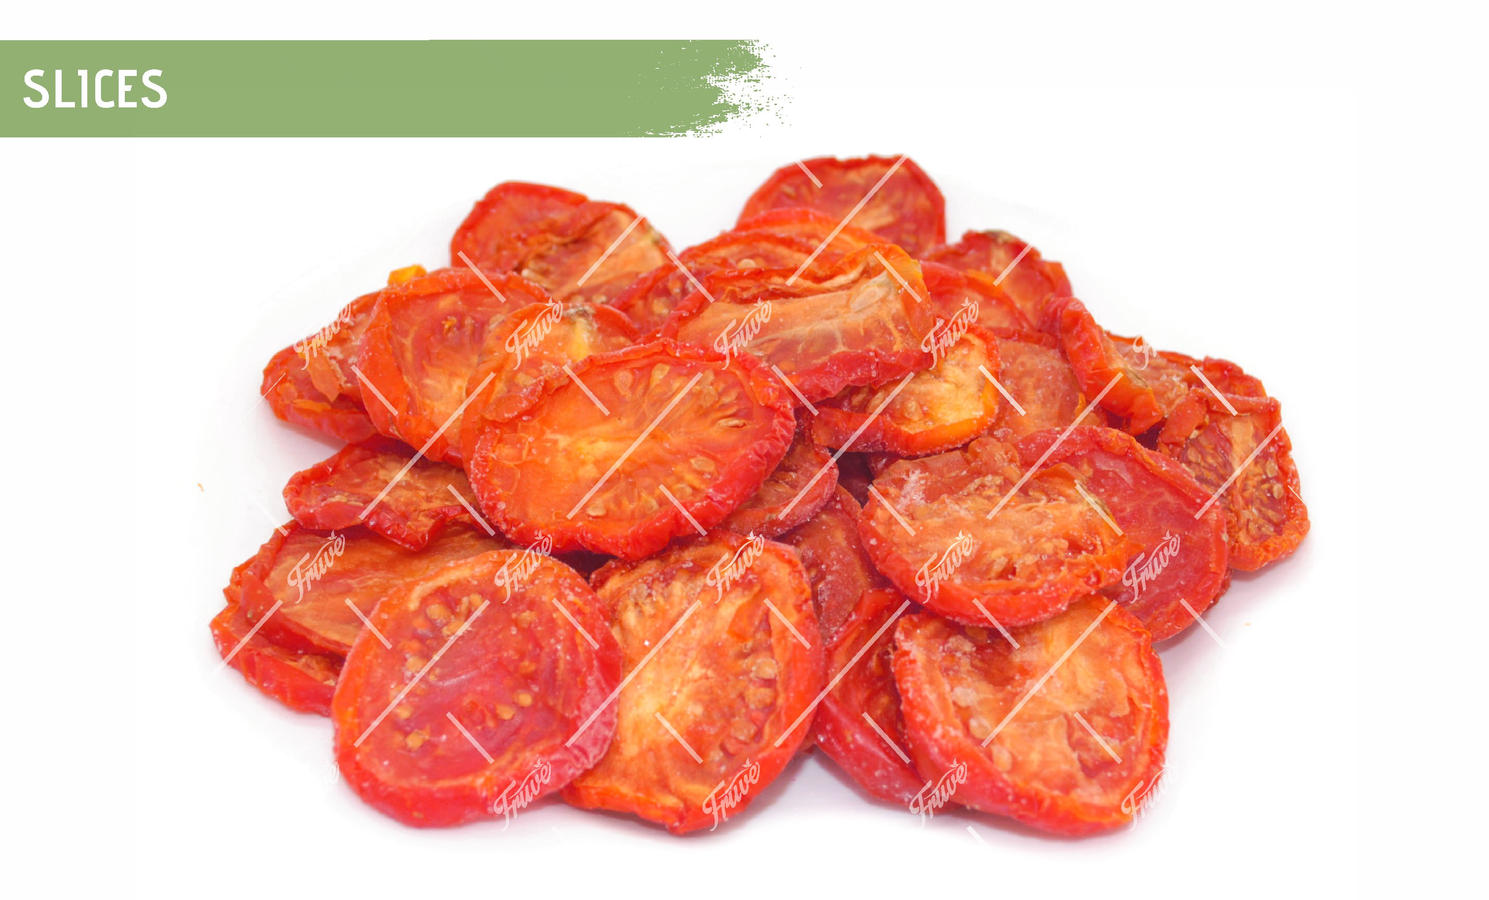 Oven Semi Dried IQF Tomatoes Slices Marinated